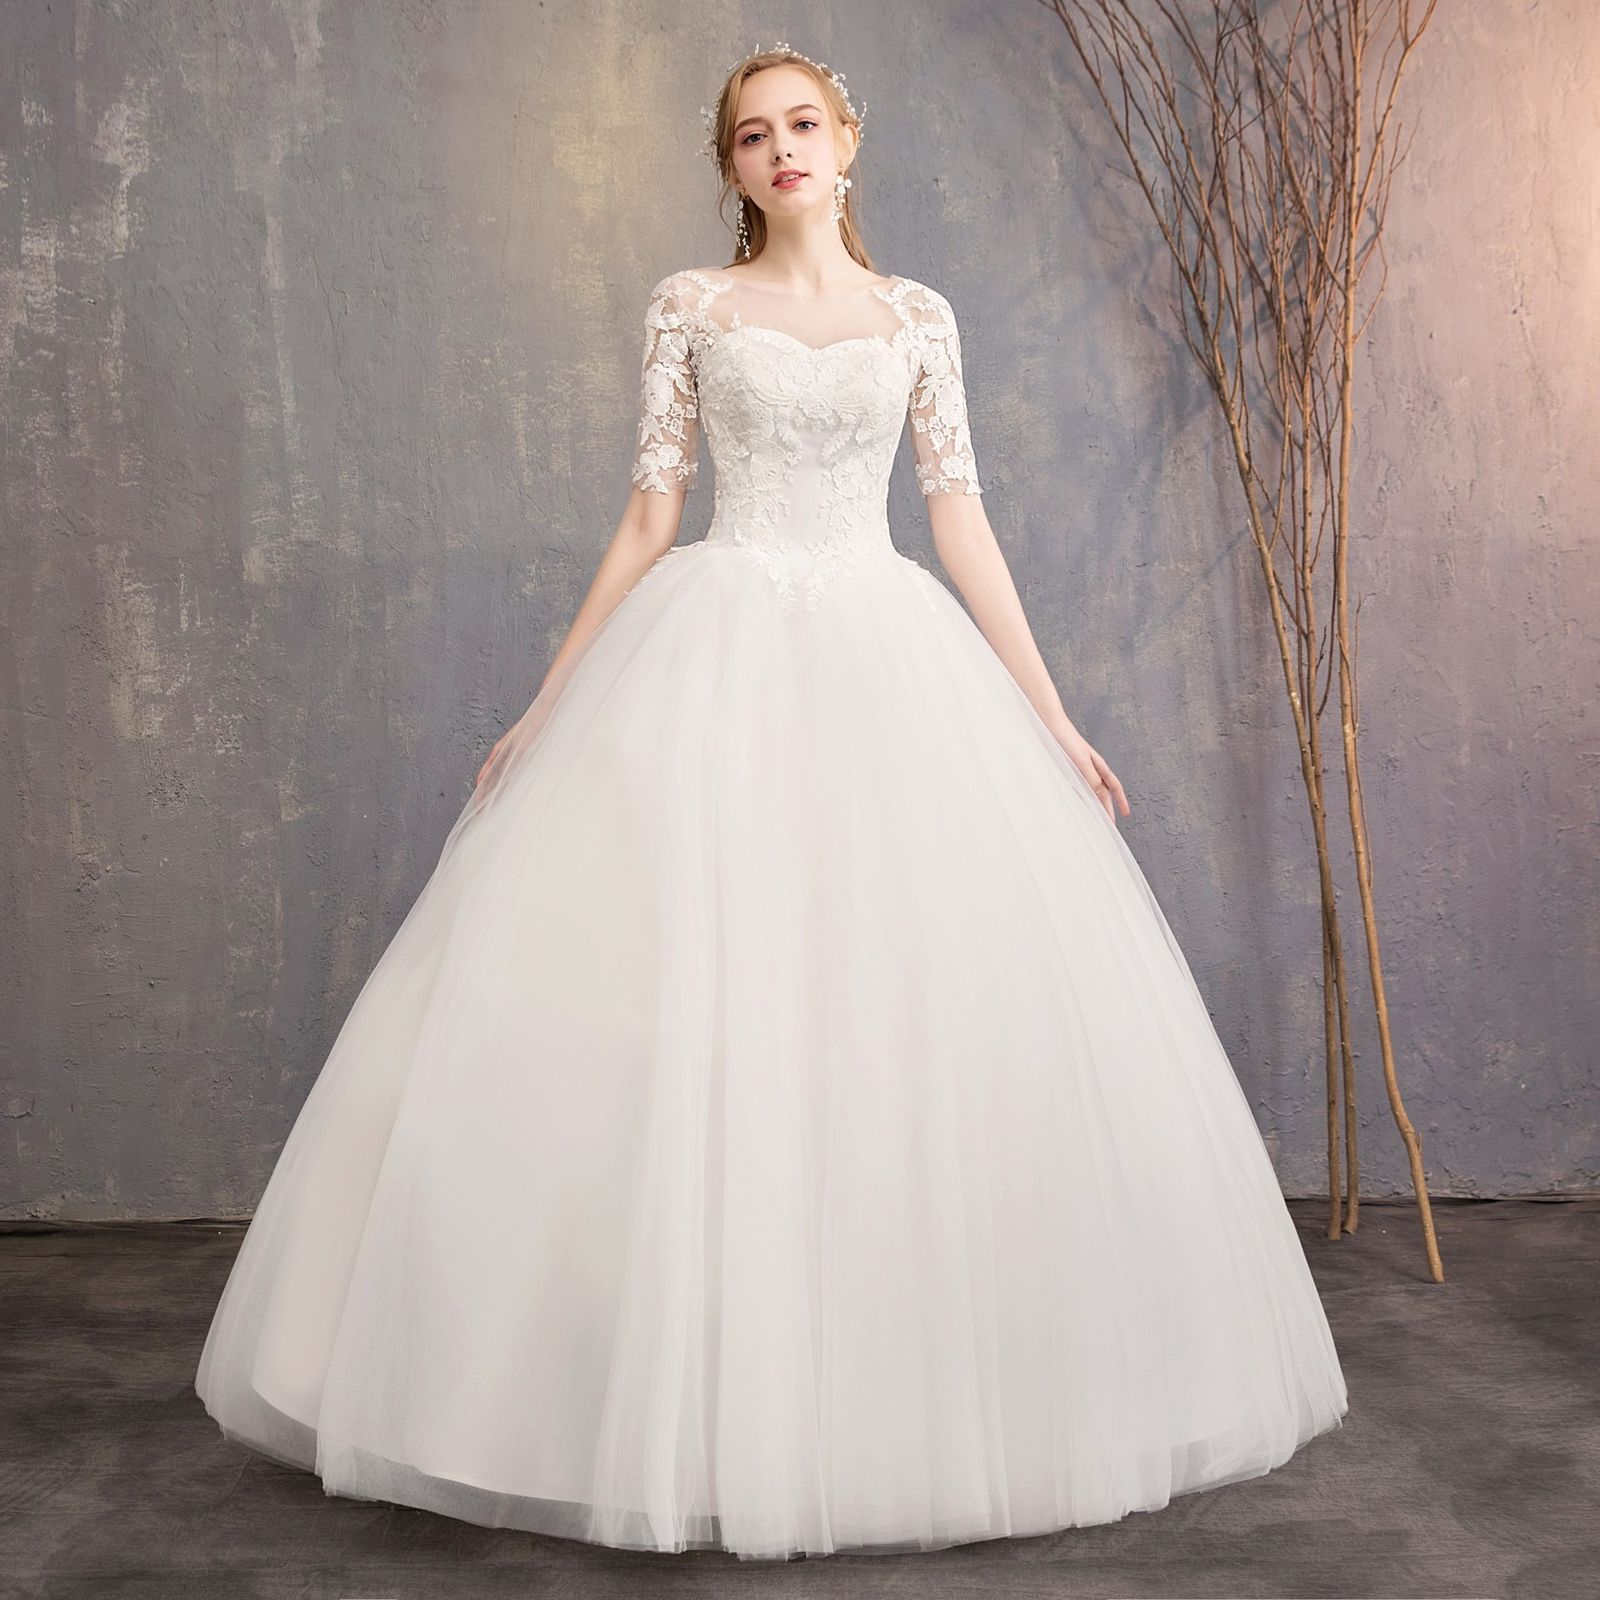 Short Sleeves Wedding Dress 2019 Ball Gowns Beige Lace